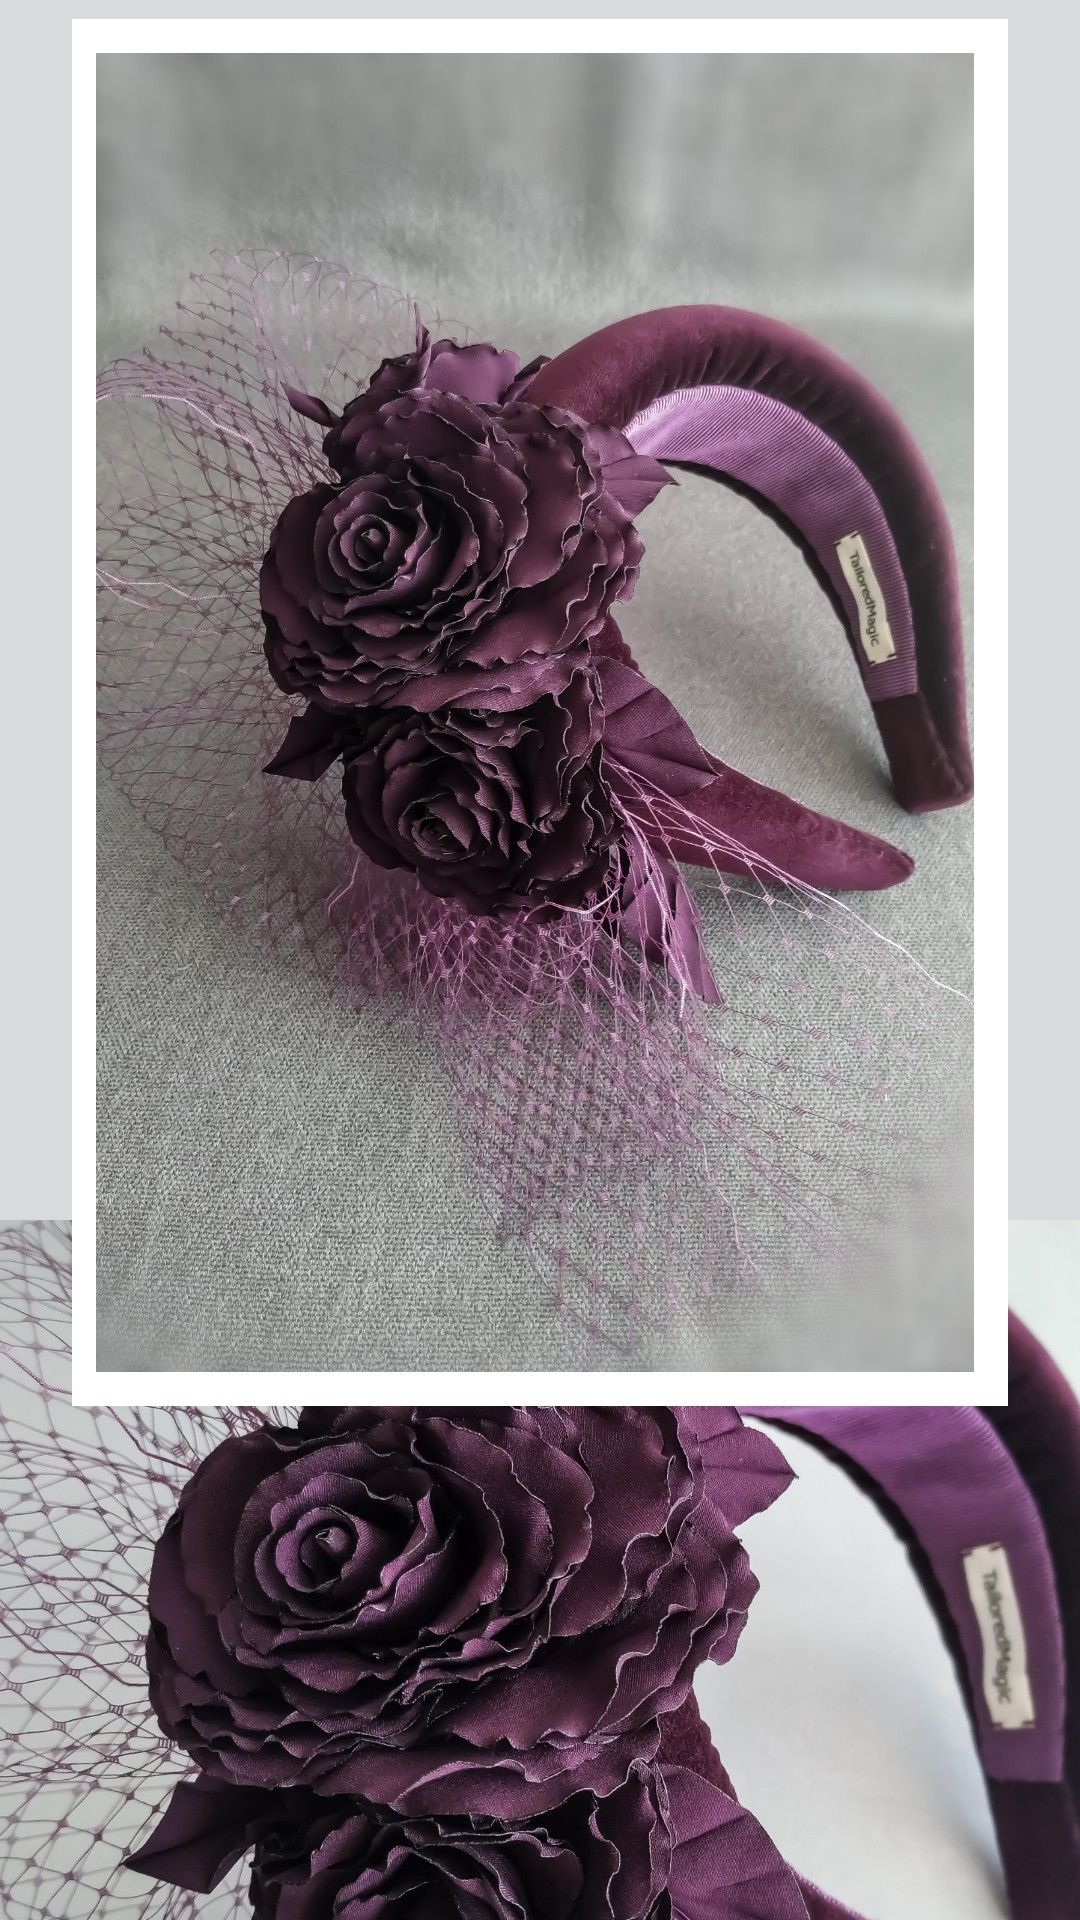 Flower halo headband by TailoredMagic, free shipping worldwide. Floral halo headpiece